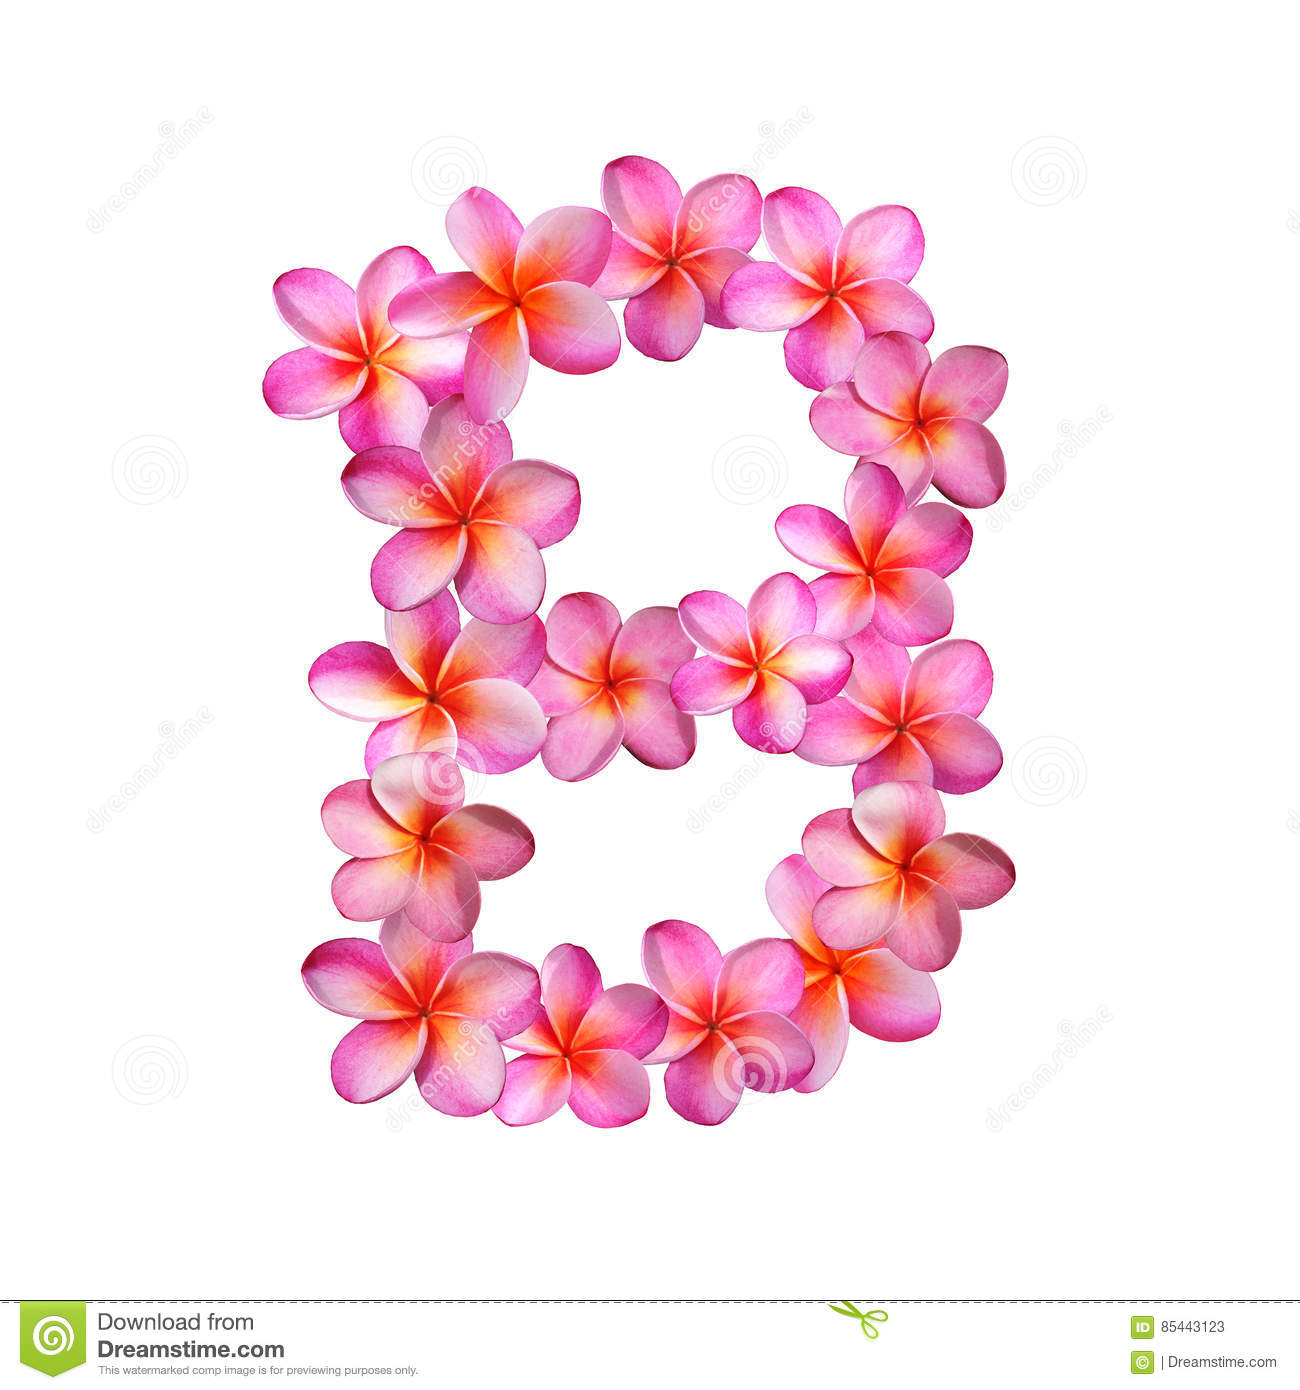 Pink Plumeria Flowers Letter B Stock Illustration - Illustration of ...